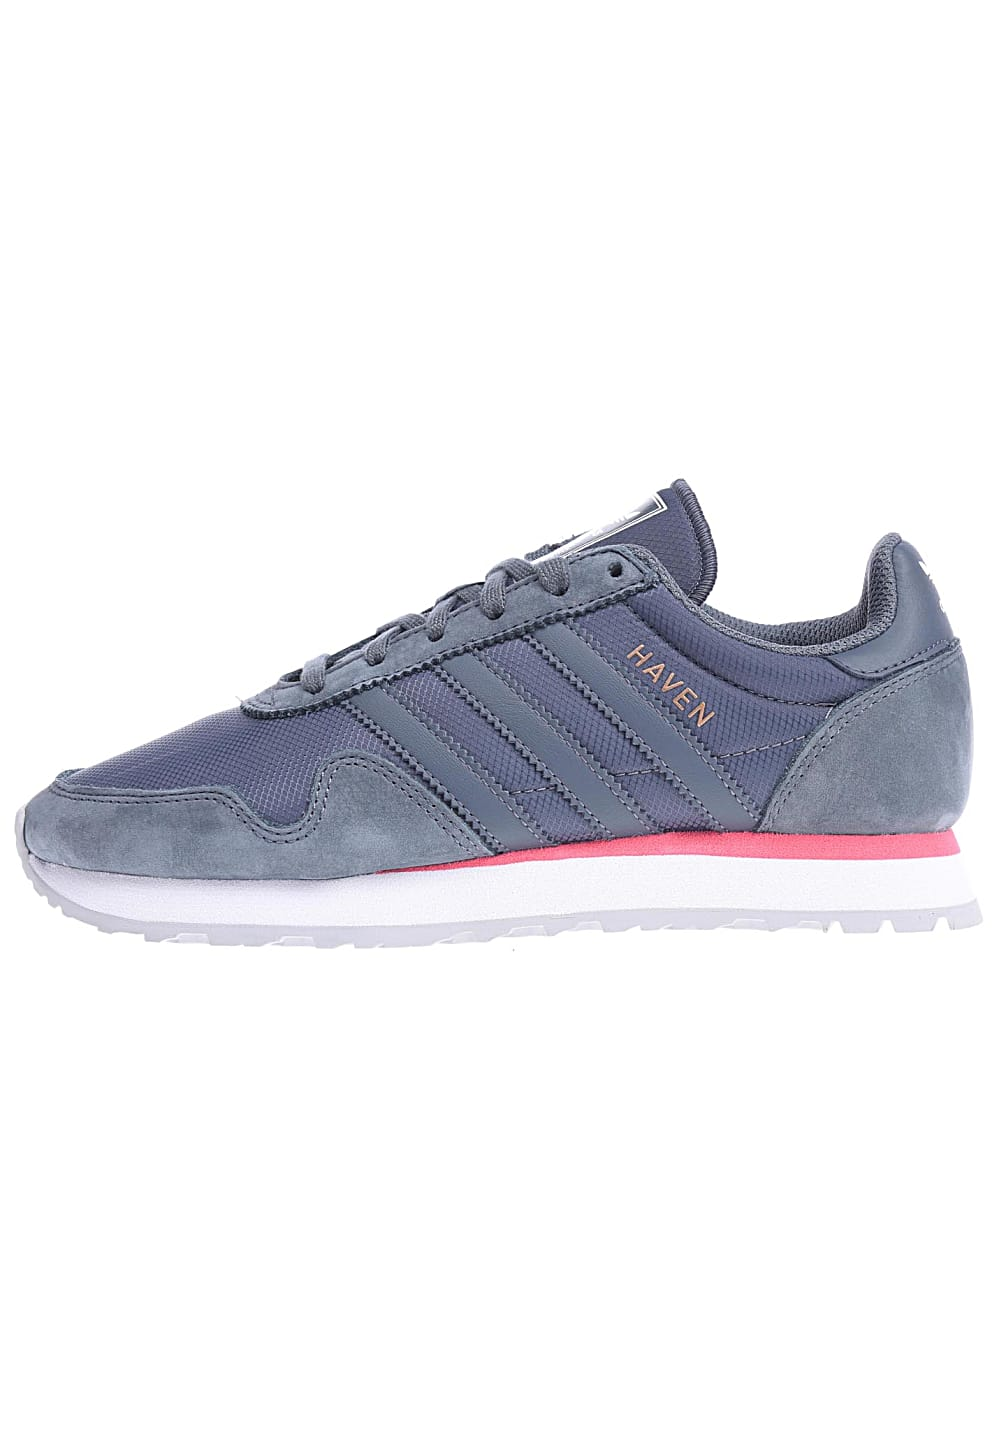 adidas Originals Haven Sneaker für Damen Grau